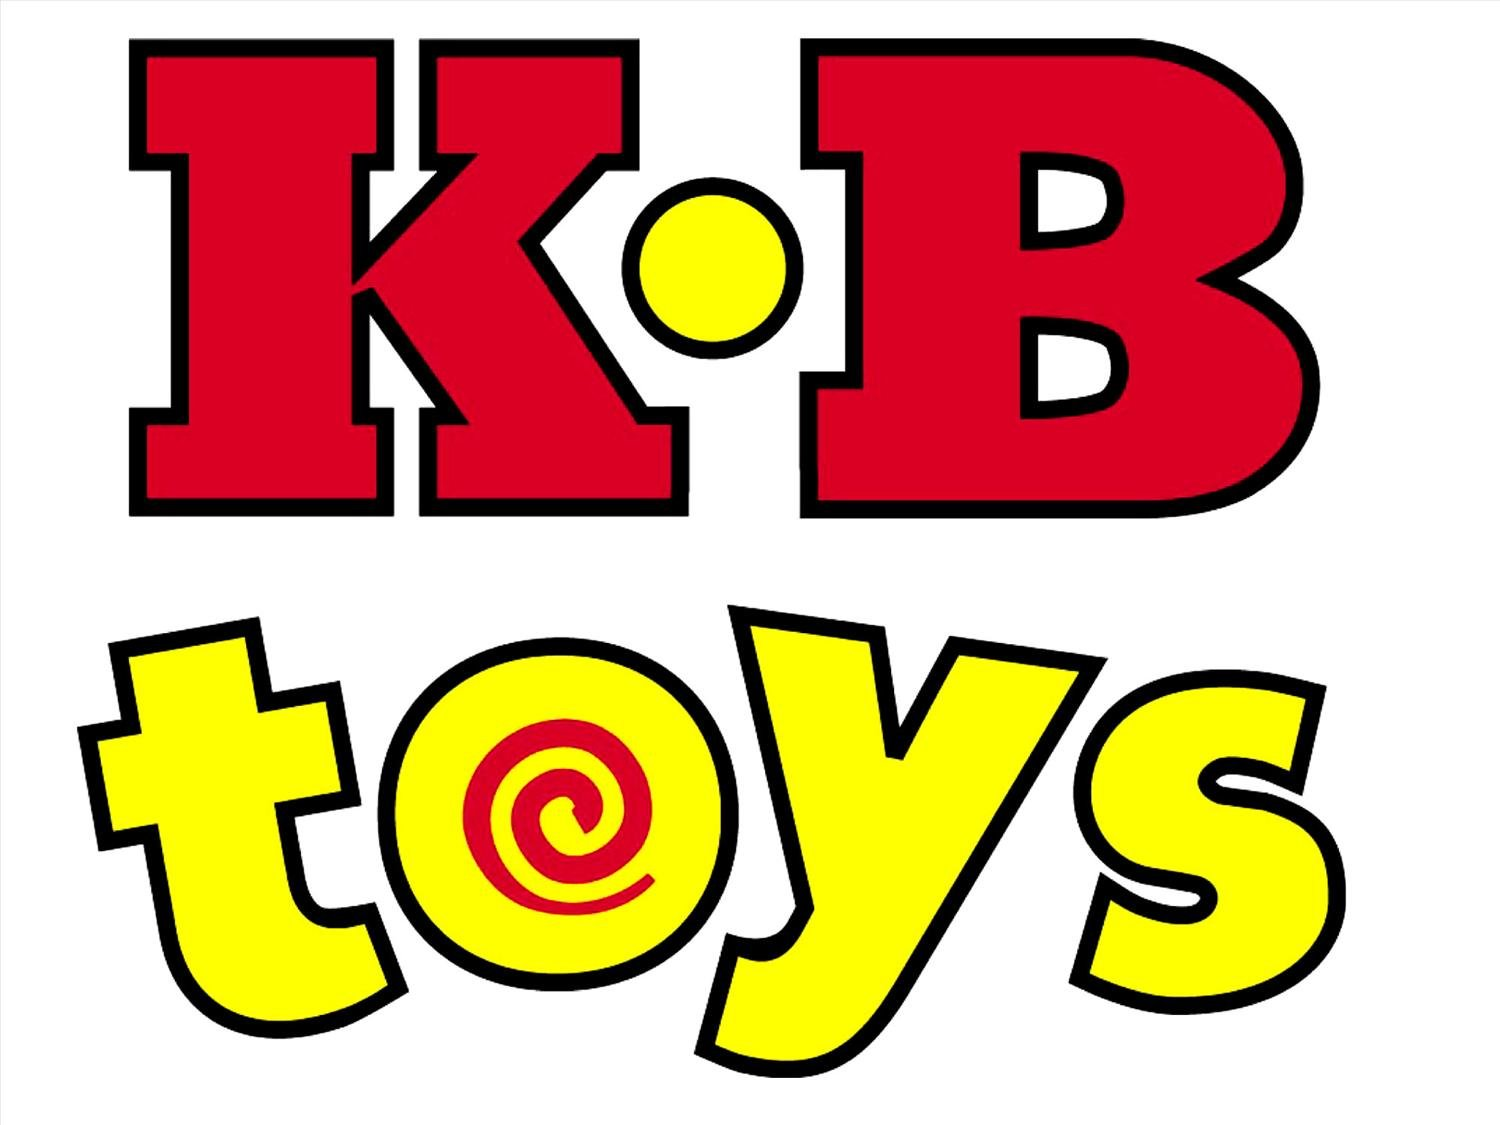 KB Toys plans comeback as Toys 'R' Us shuts down